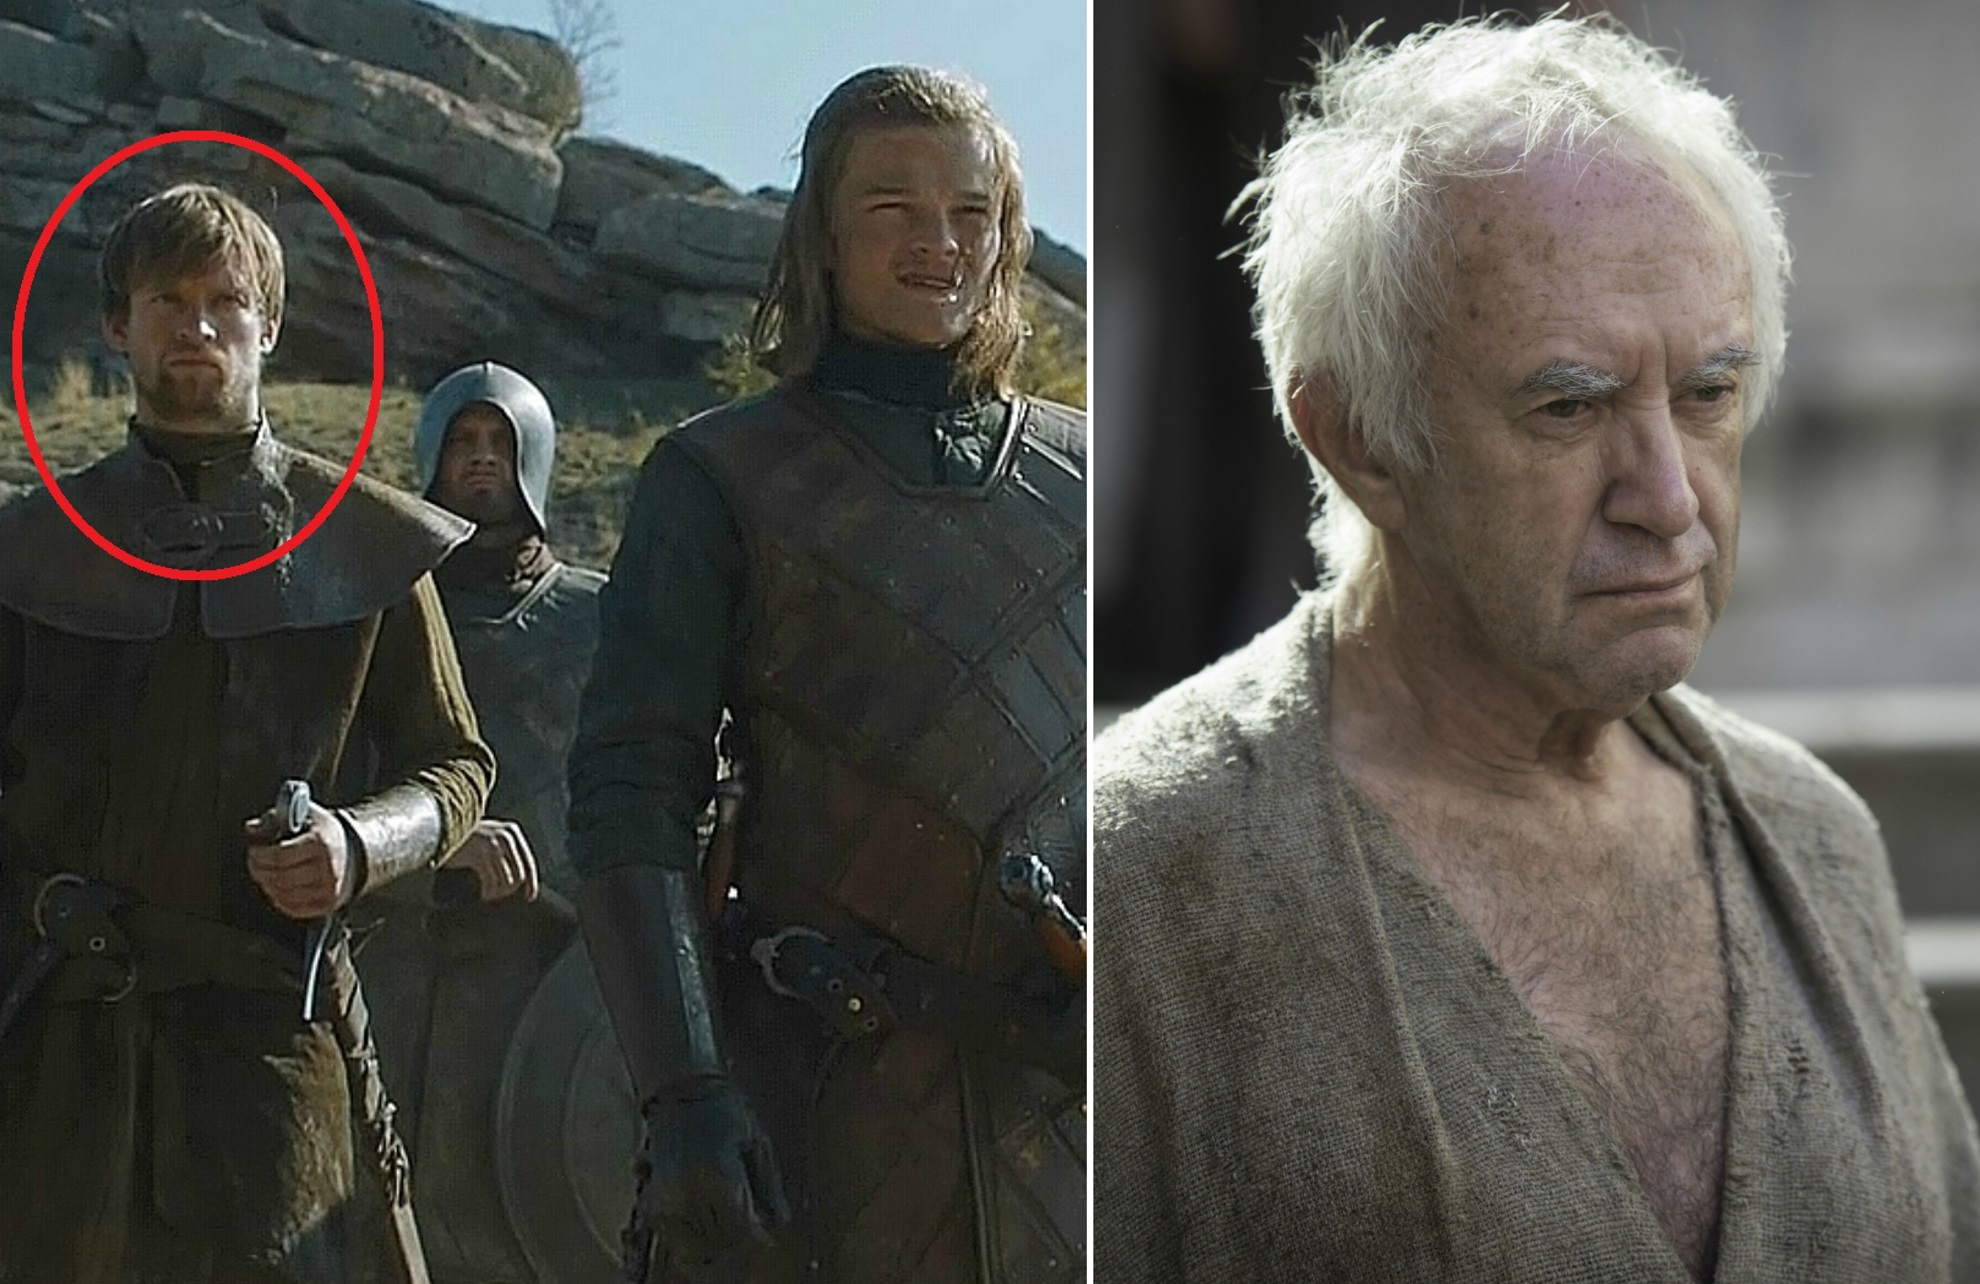 Could Howland Reed Be The High Sparrow? - A Blog Of Thrones  Could Howland R...